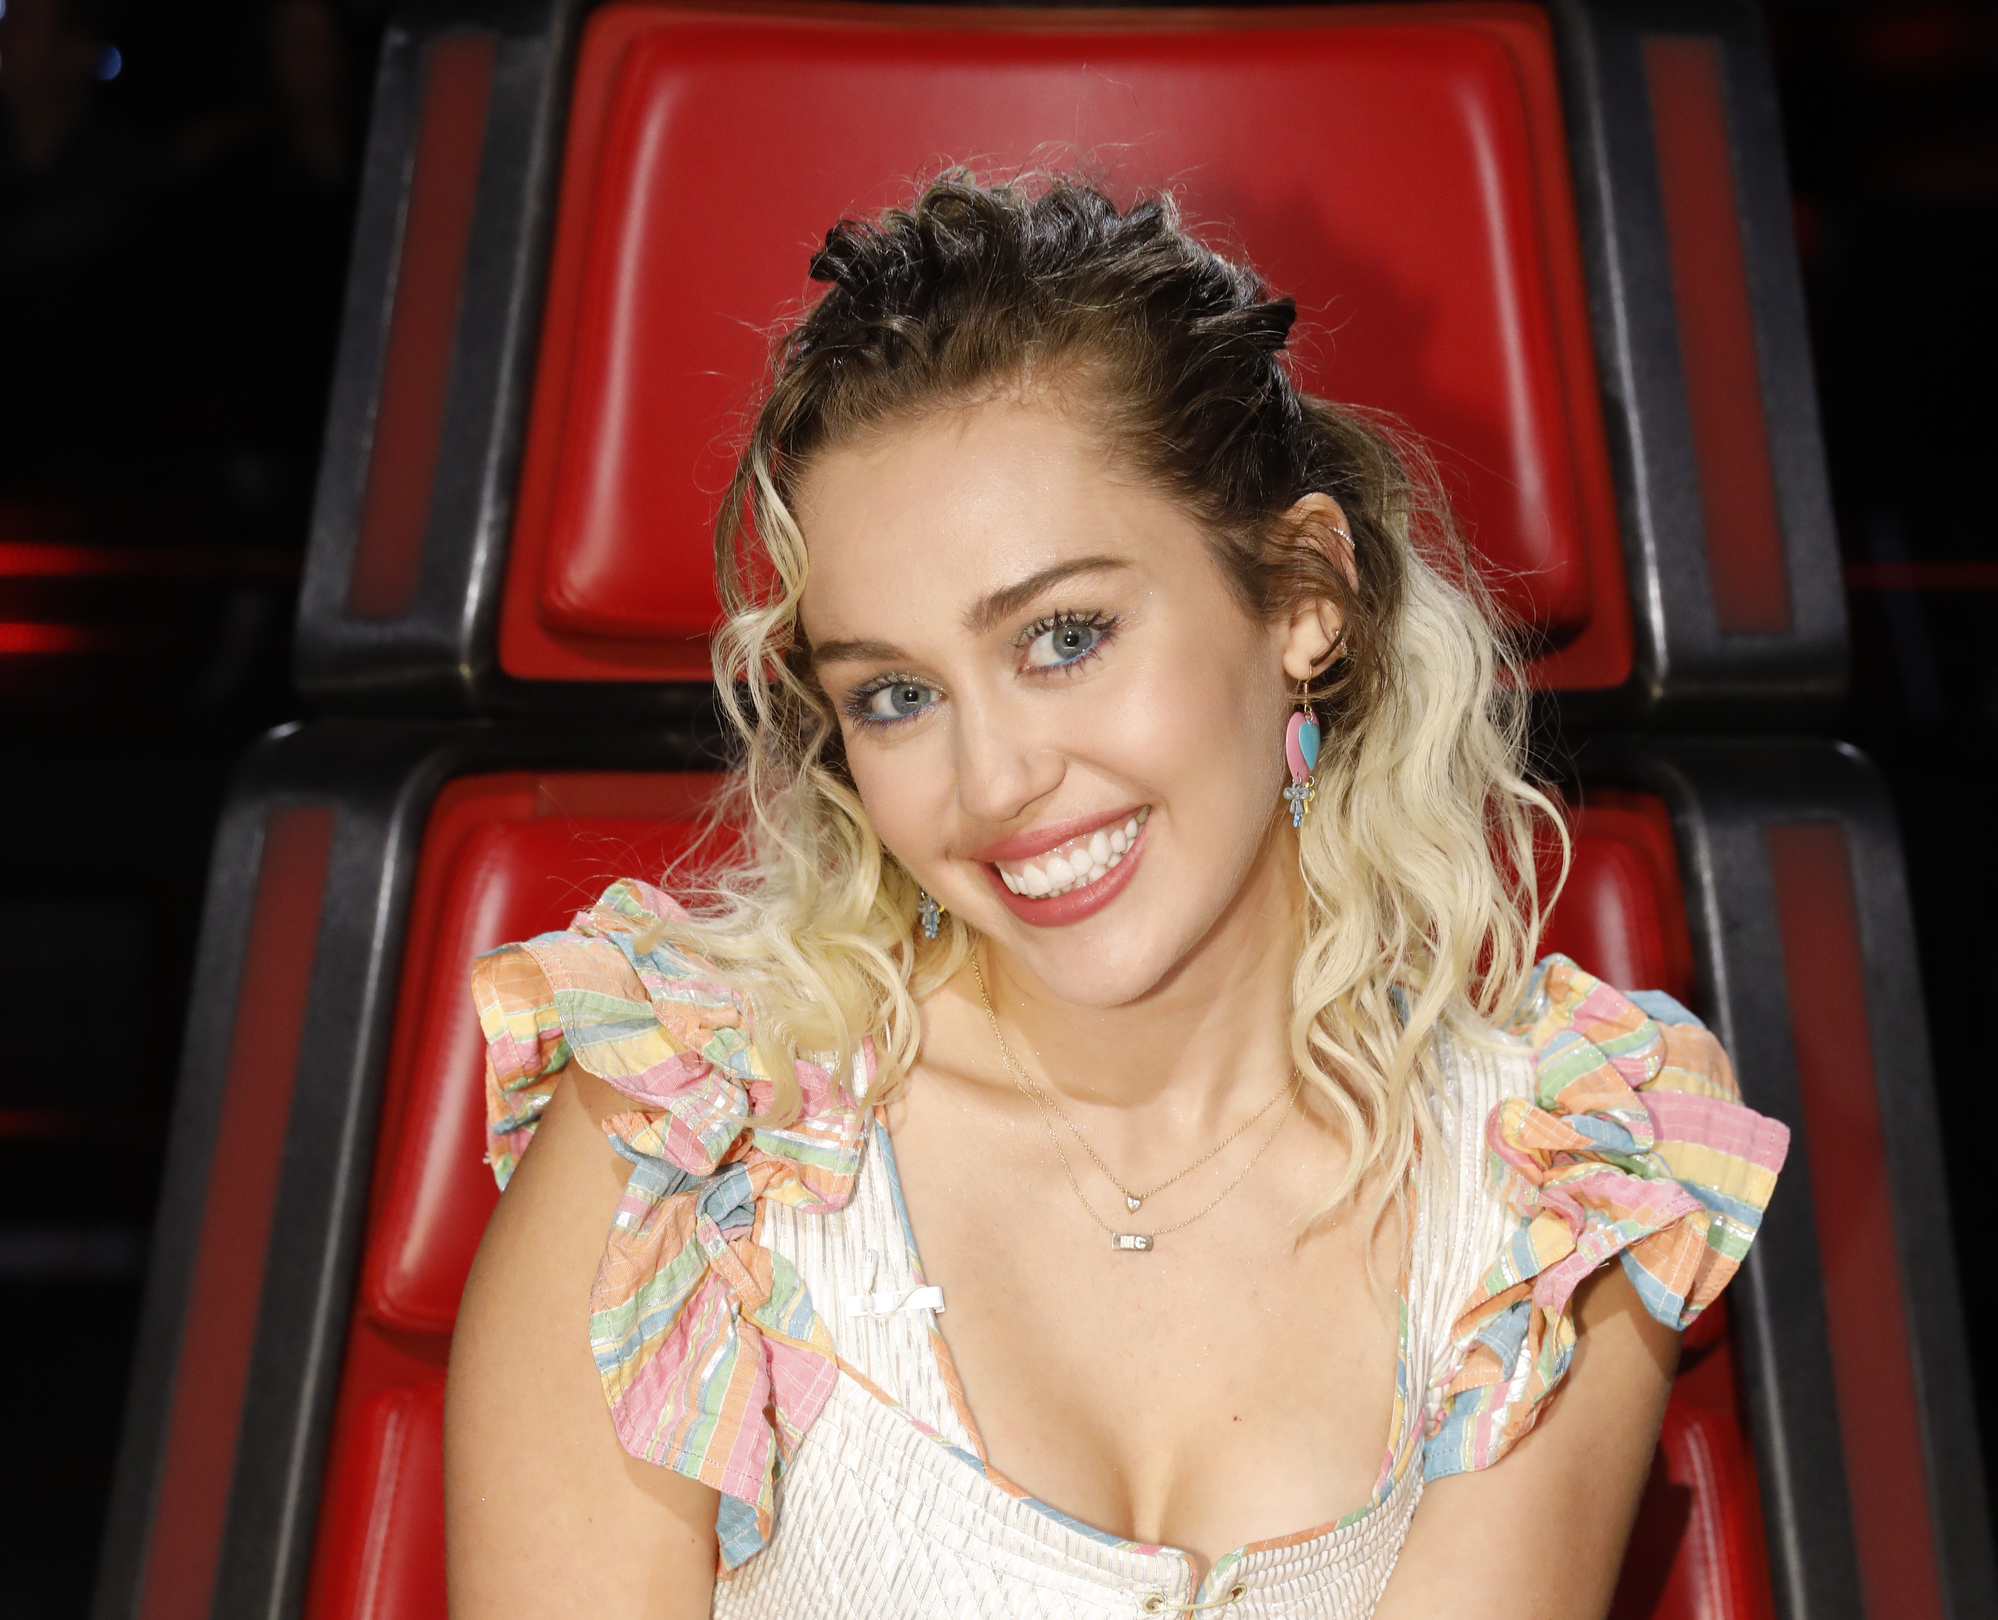 Miley Cyrus wore a renfaire inspired dress on The Voice